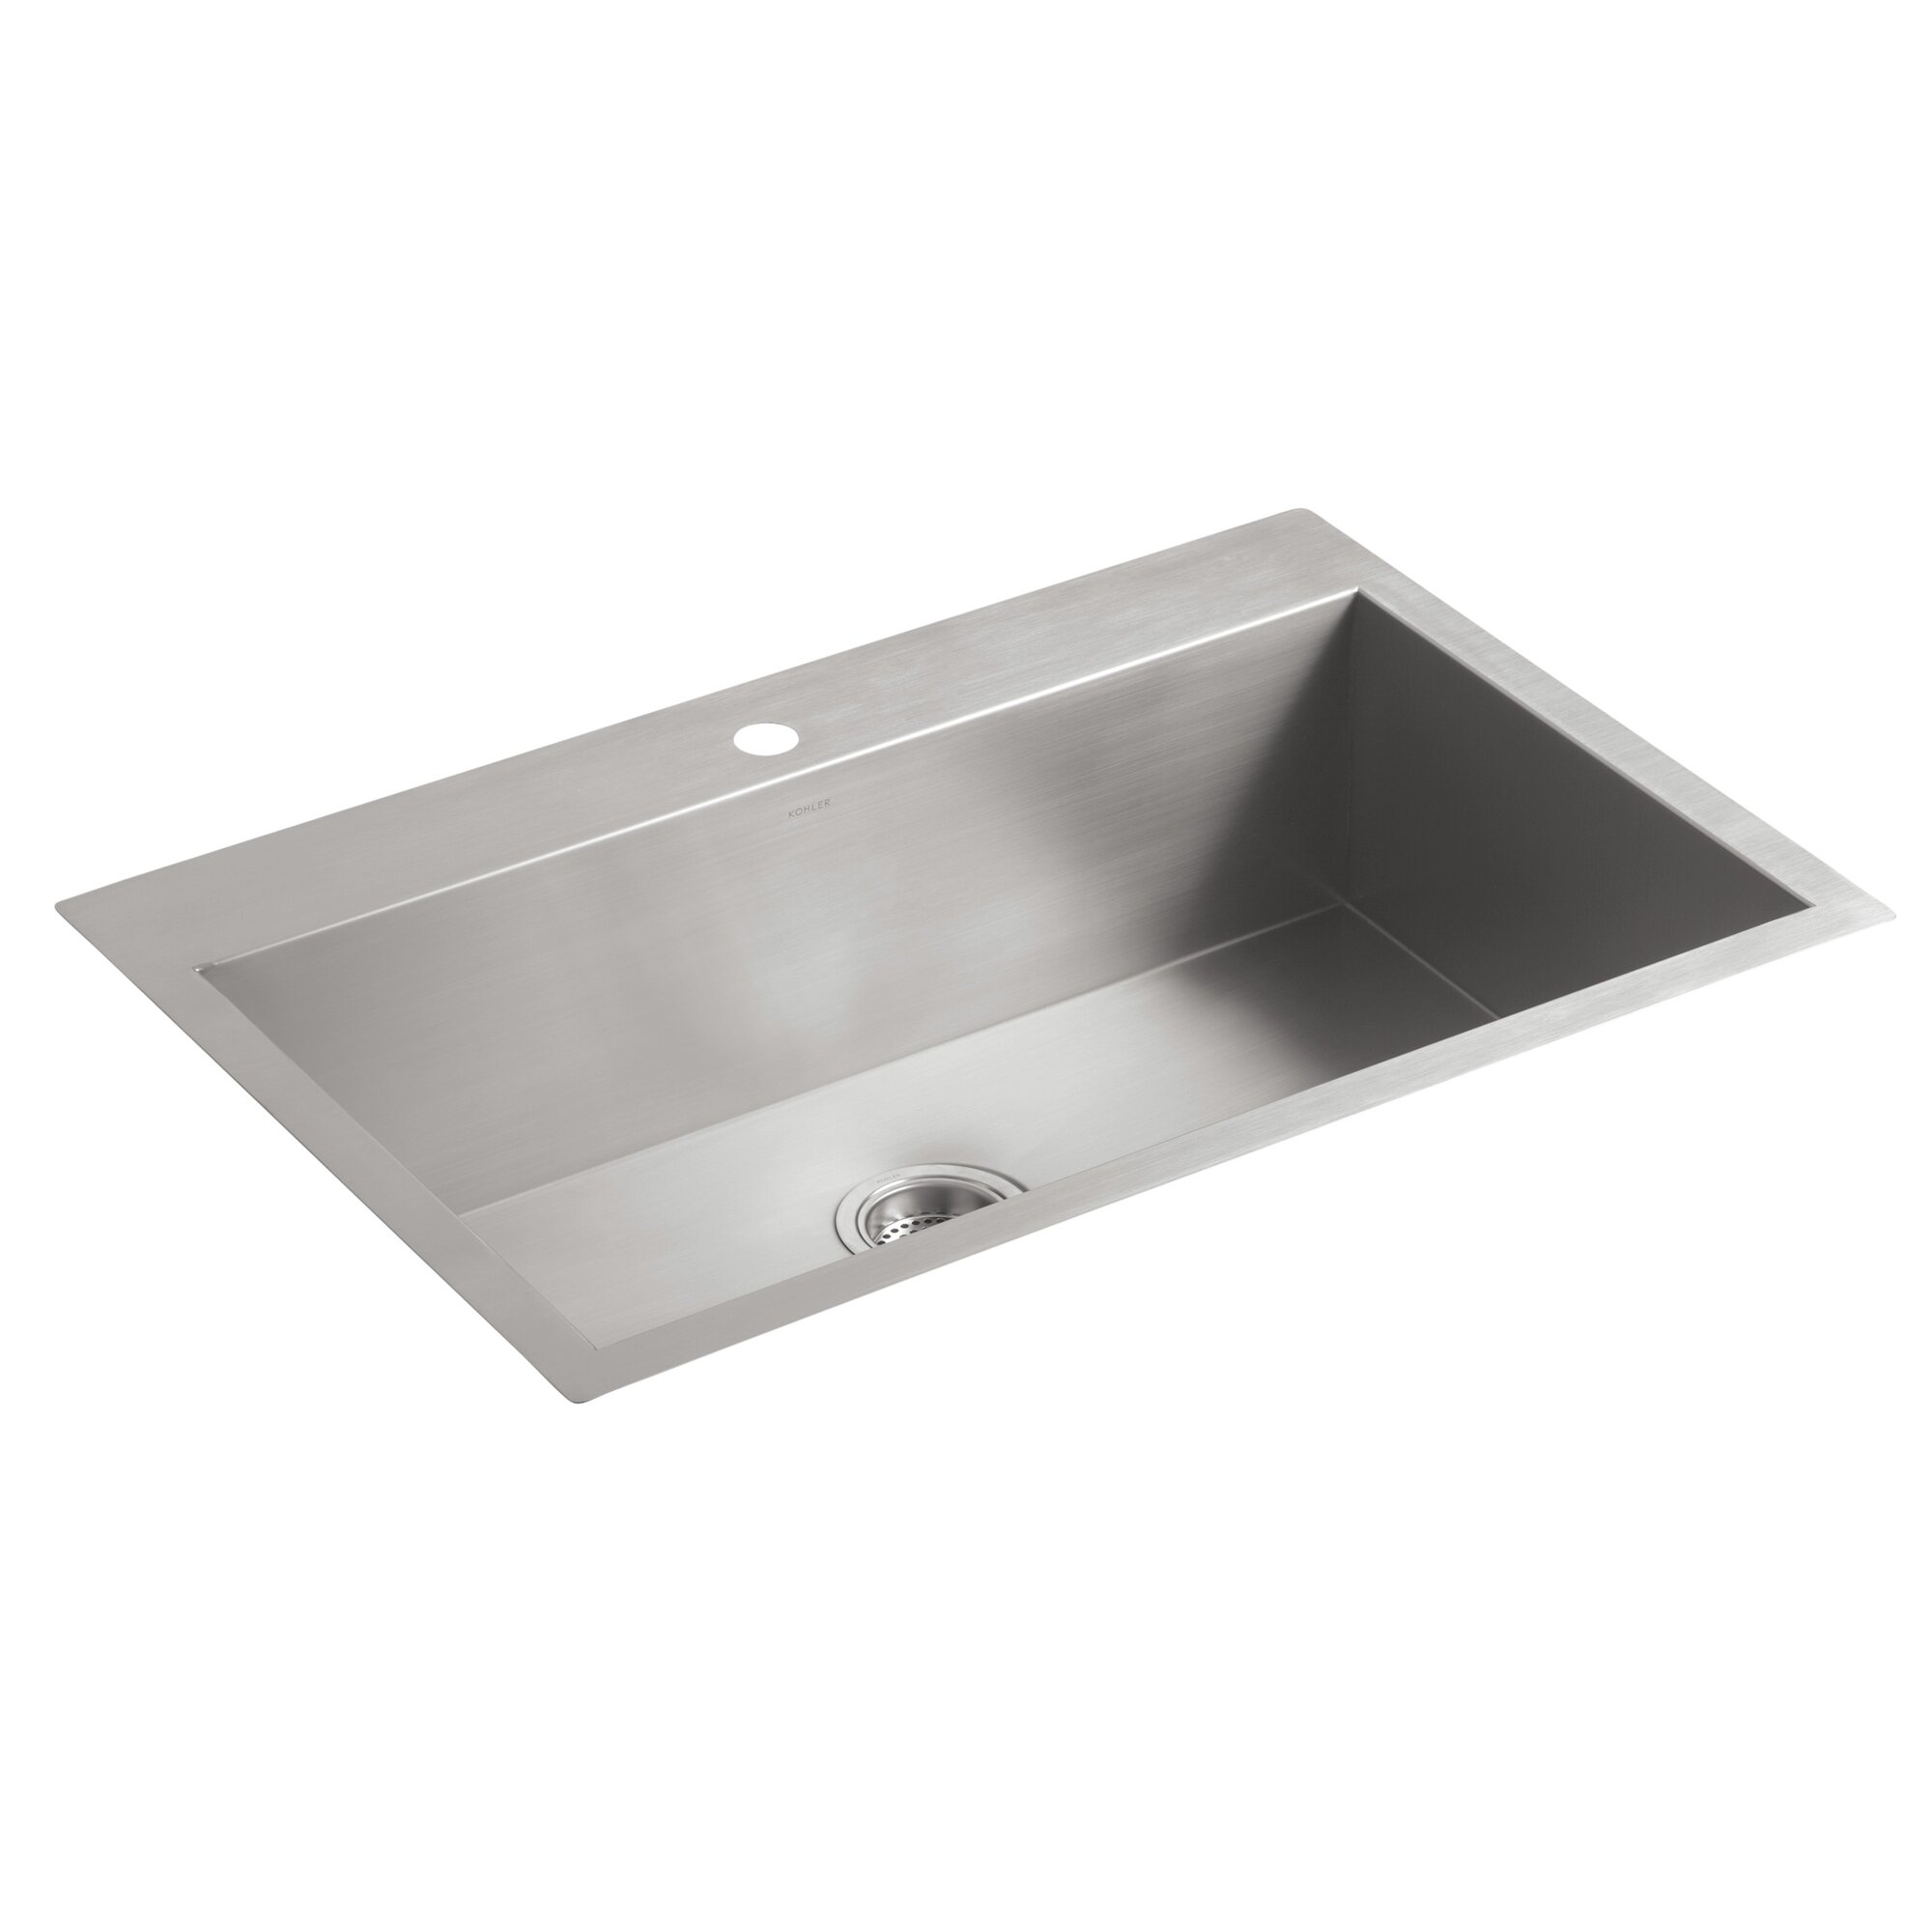 vault 33 x 22 x 9 516 top mount - White Single Basin Kitchen Sink